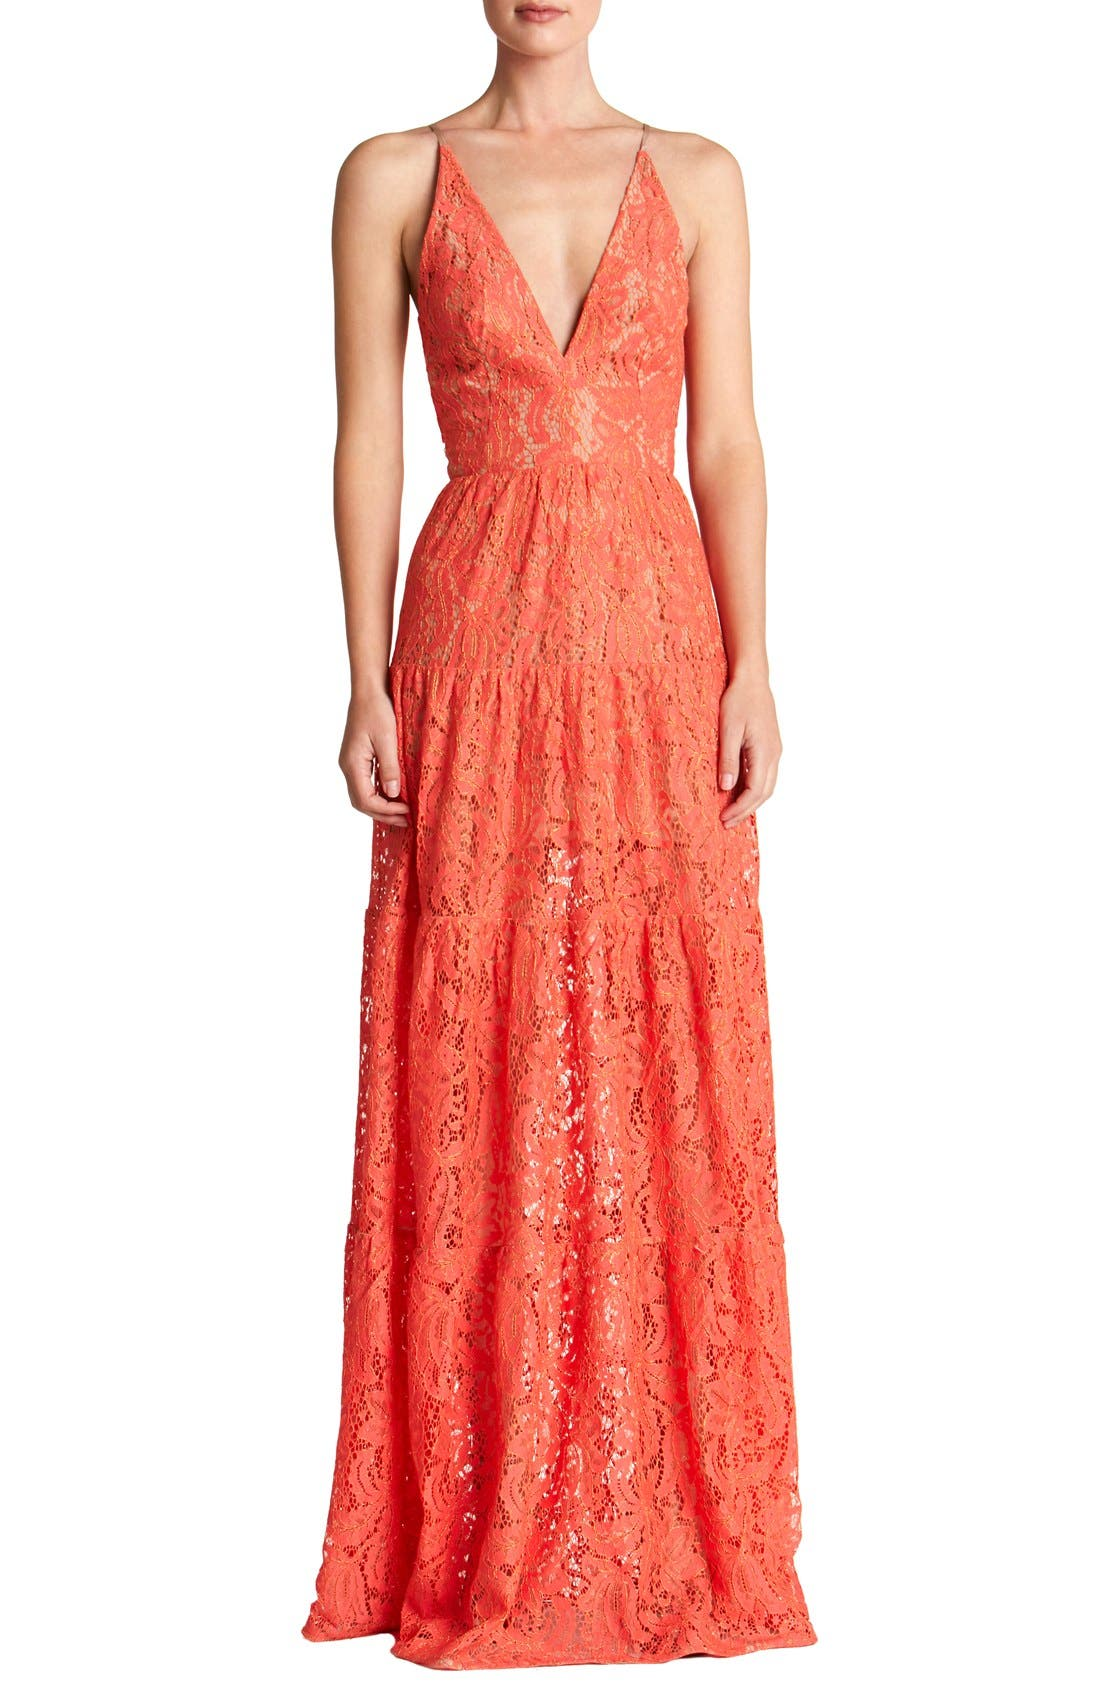 Main Image - Dress the Population Melina Lace Fit & Flare Maxi Dress